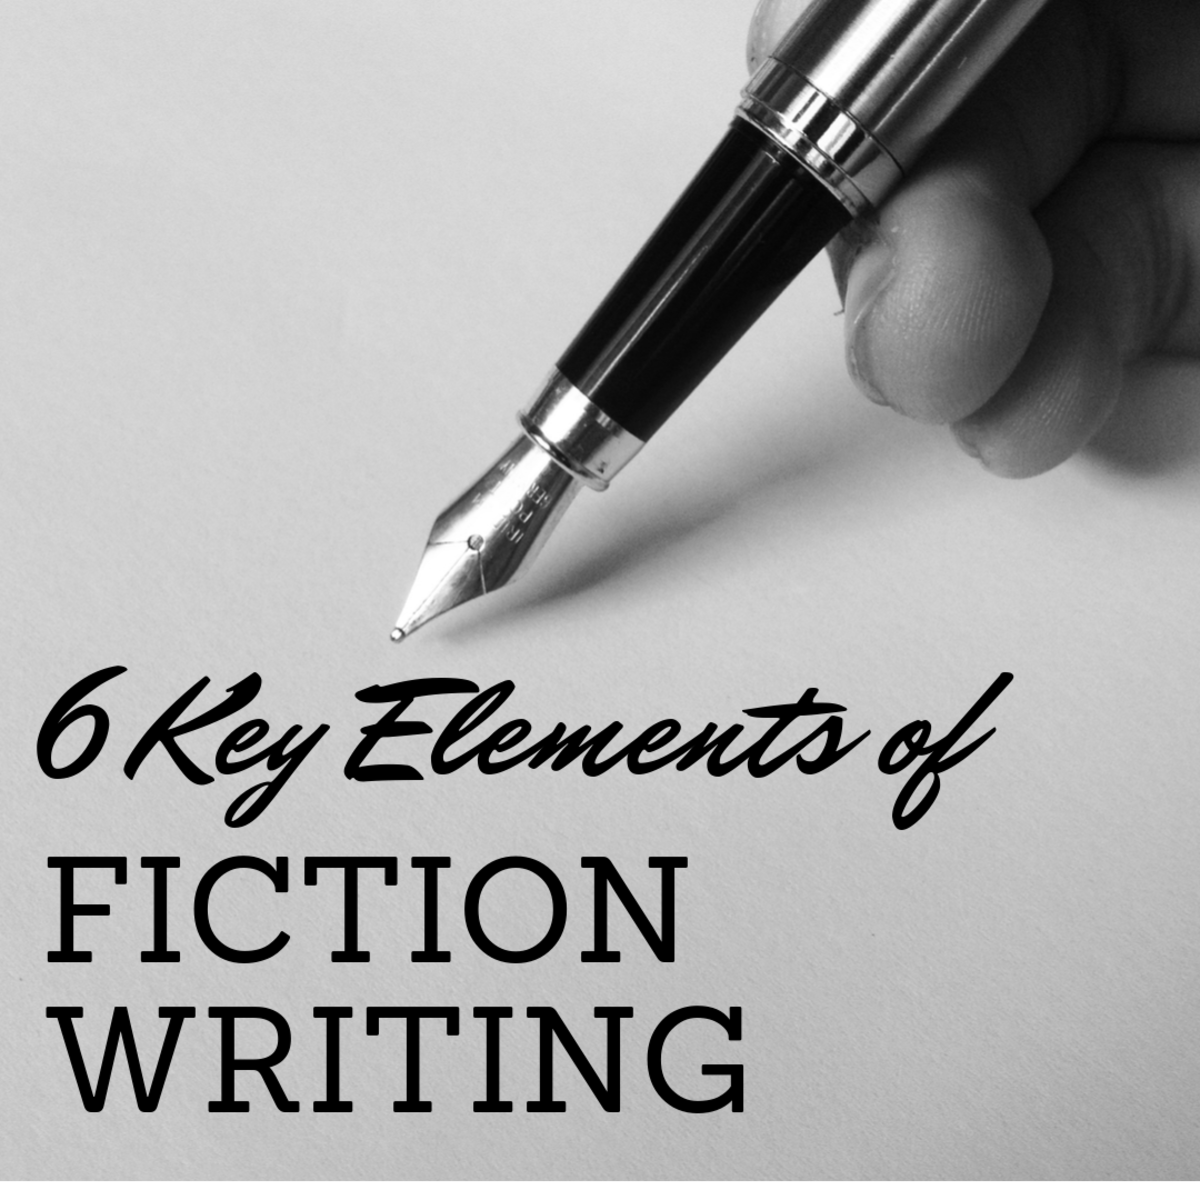 The 6 Basic Key Elements of Fiction Writing